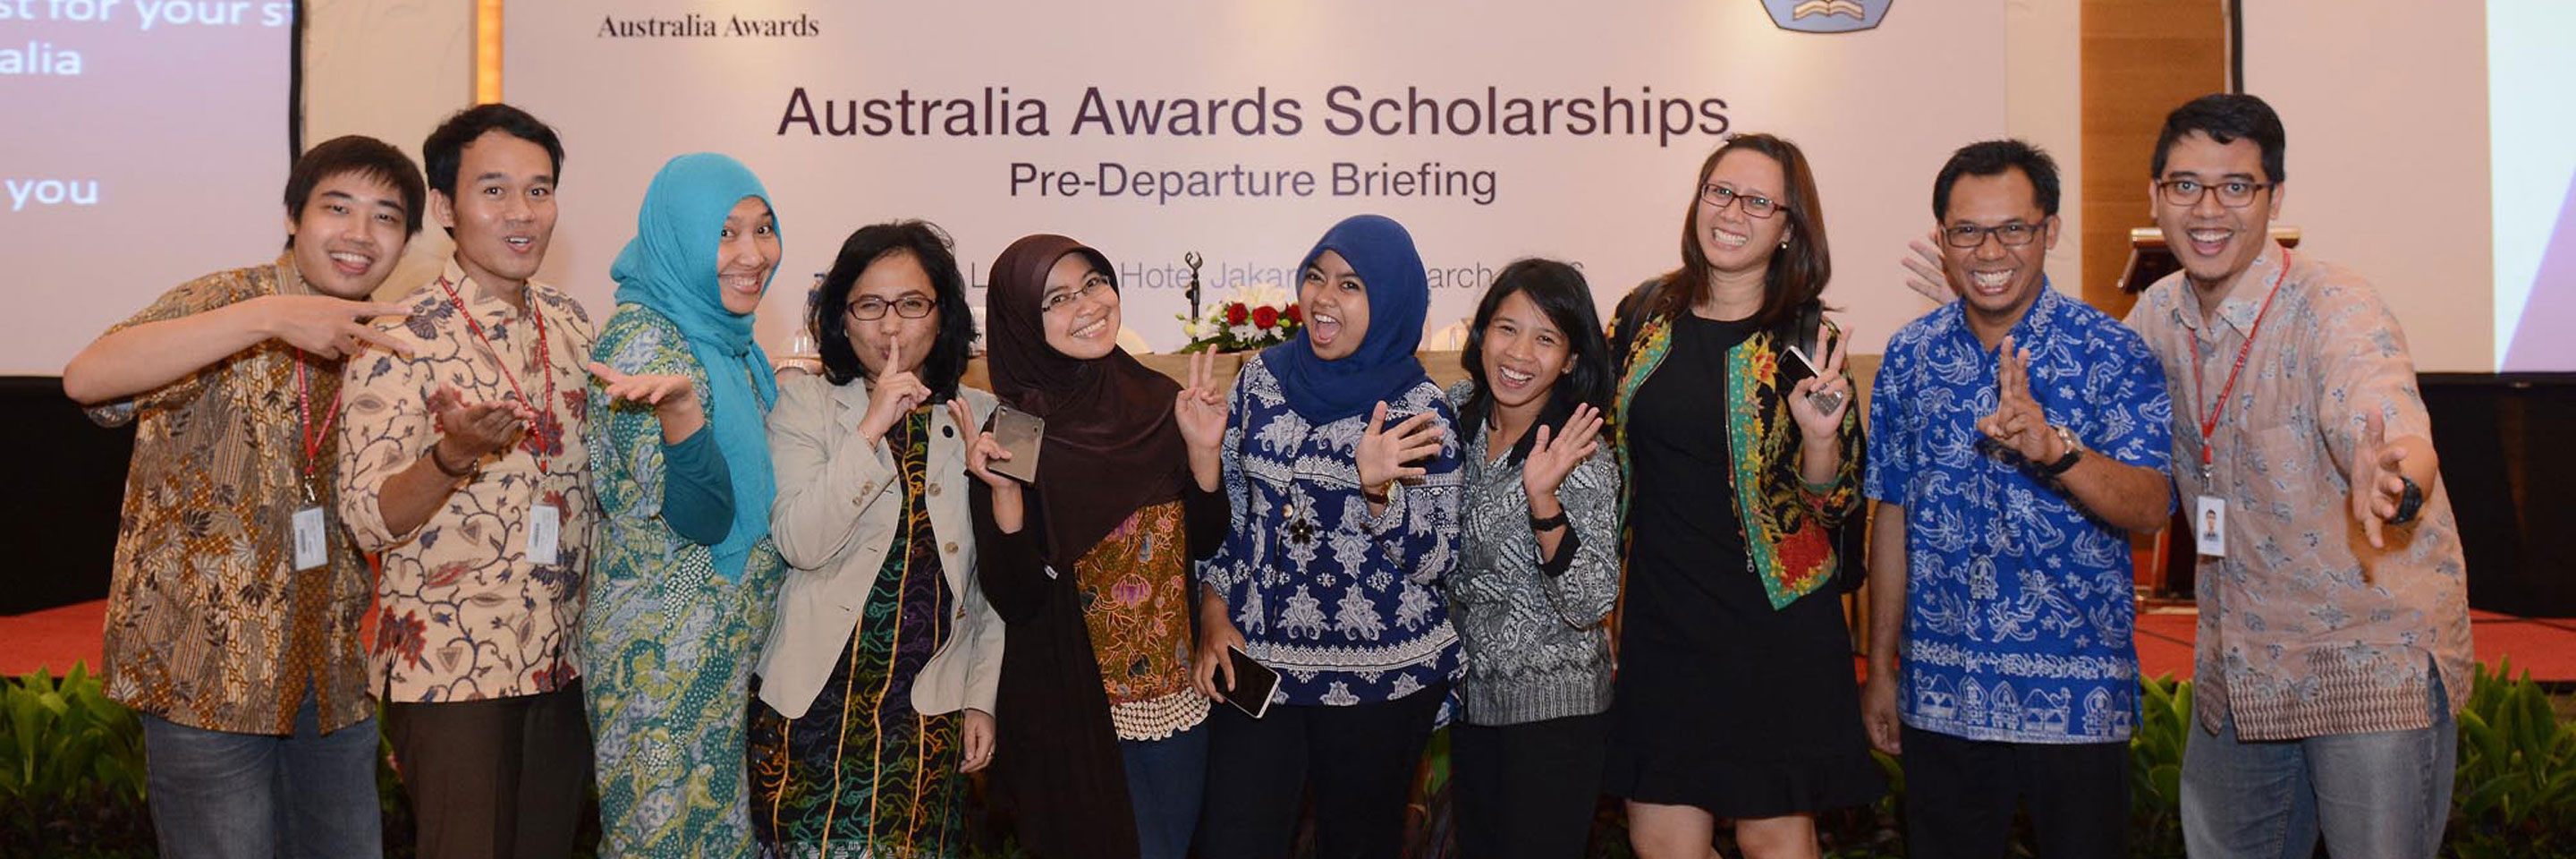 Australia Awards Scholars participate in a Pre-Departure Briefing before embarking on their study in Australia.